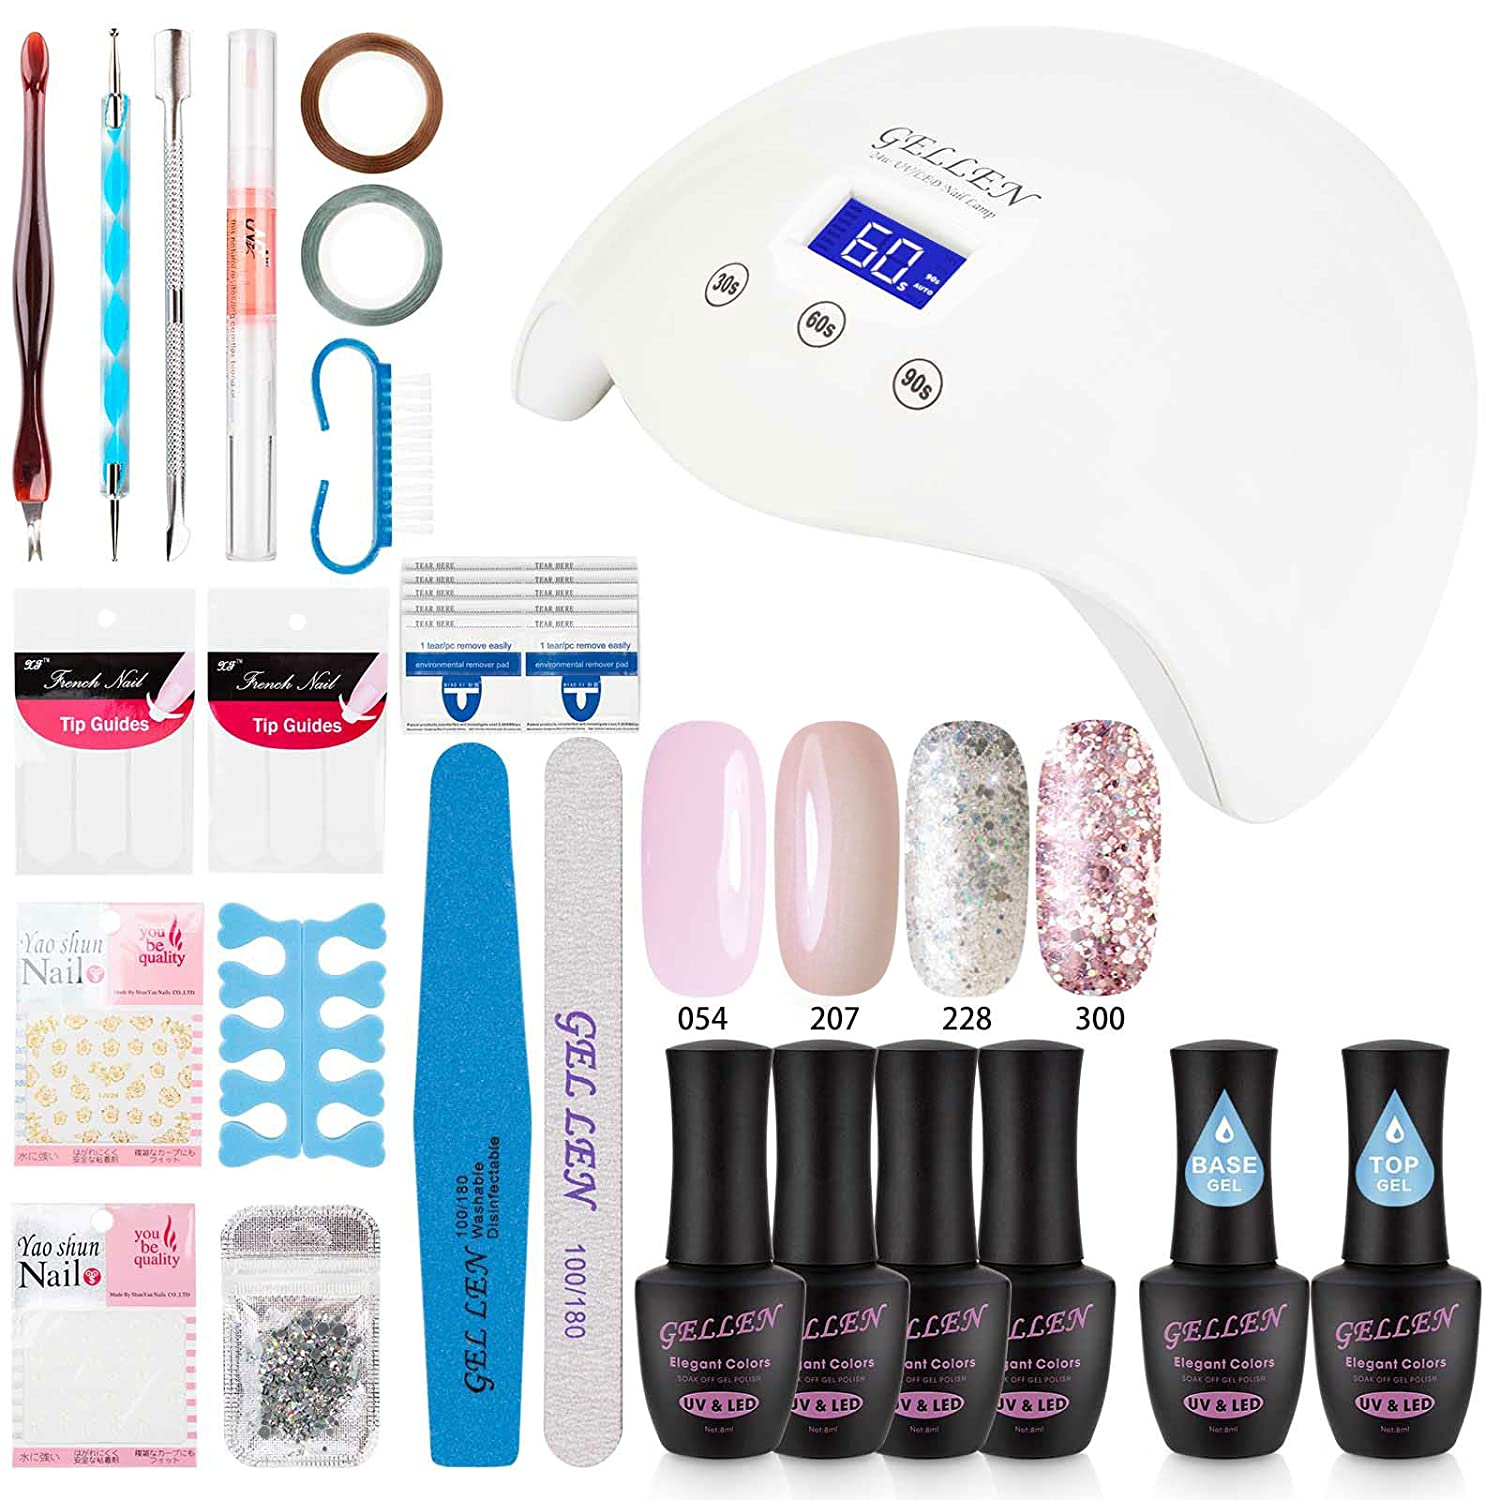 Gellen Gel Nail Polish Starter Kit with 24W LED lamp Base Top Coat, Manicure Tools Popular Nail Art Designs #1